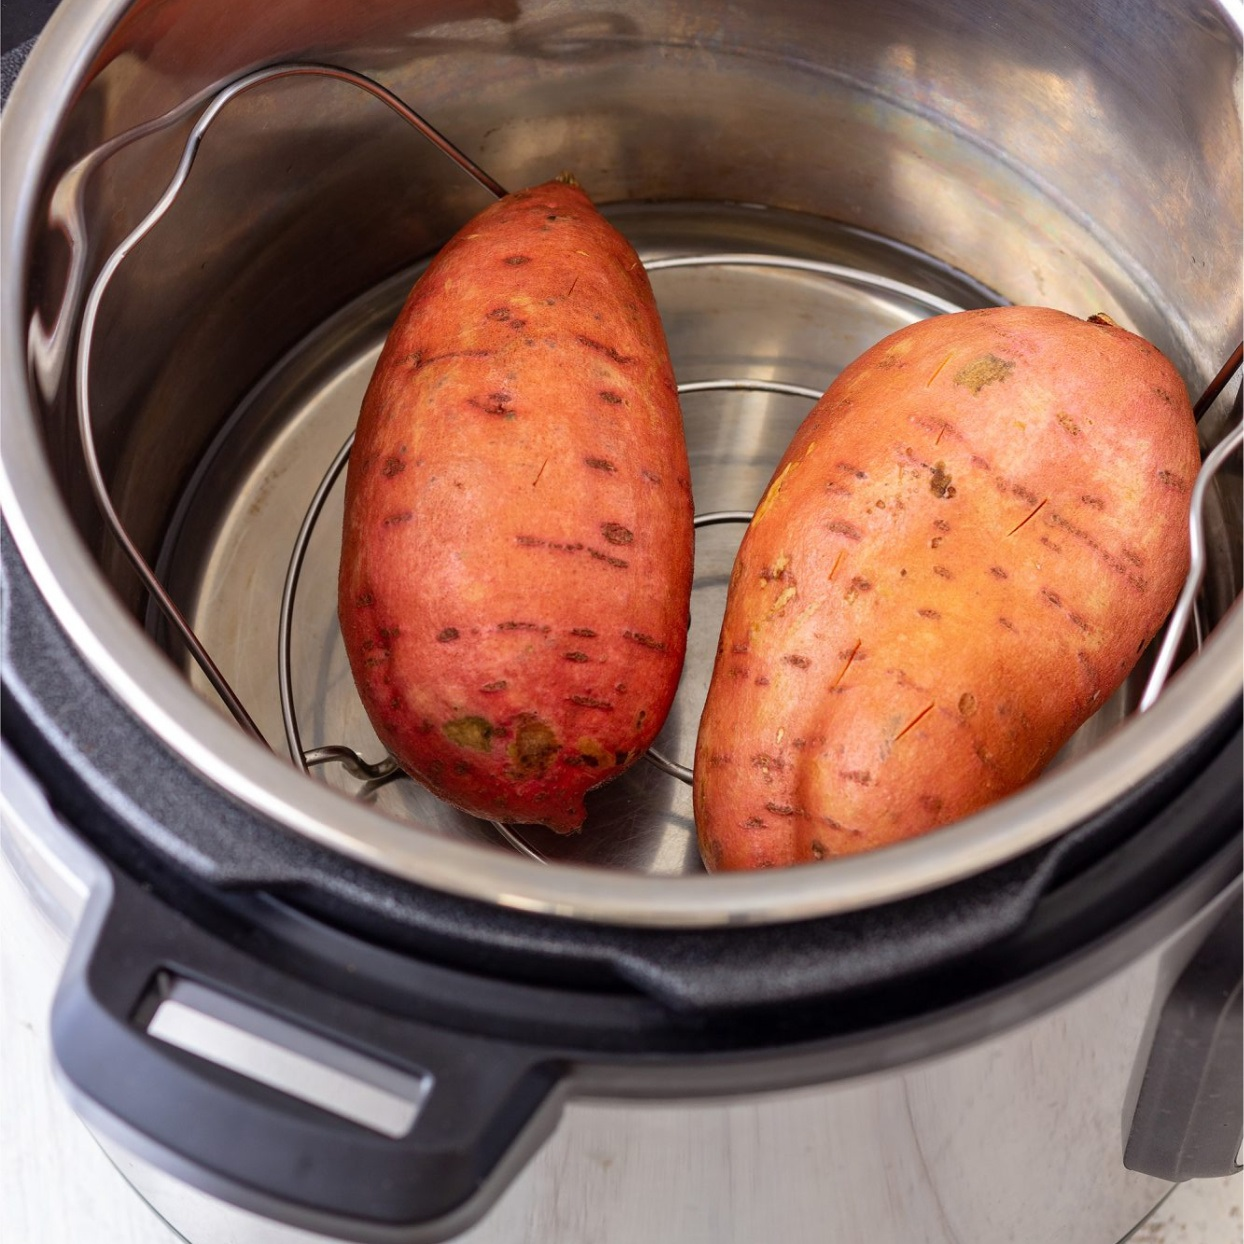 sweet potatoes ready to be cooked in an instant pot